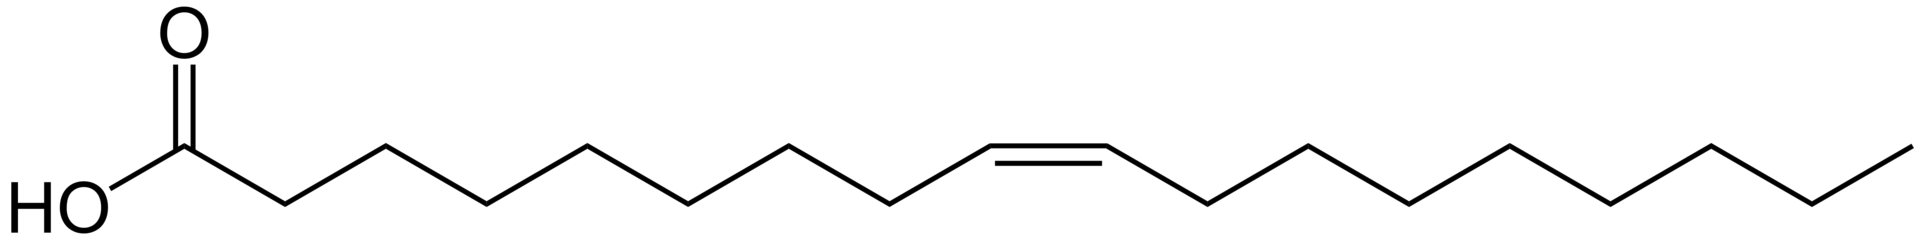 structure of oleic acid